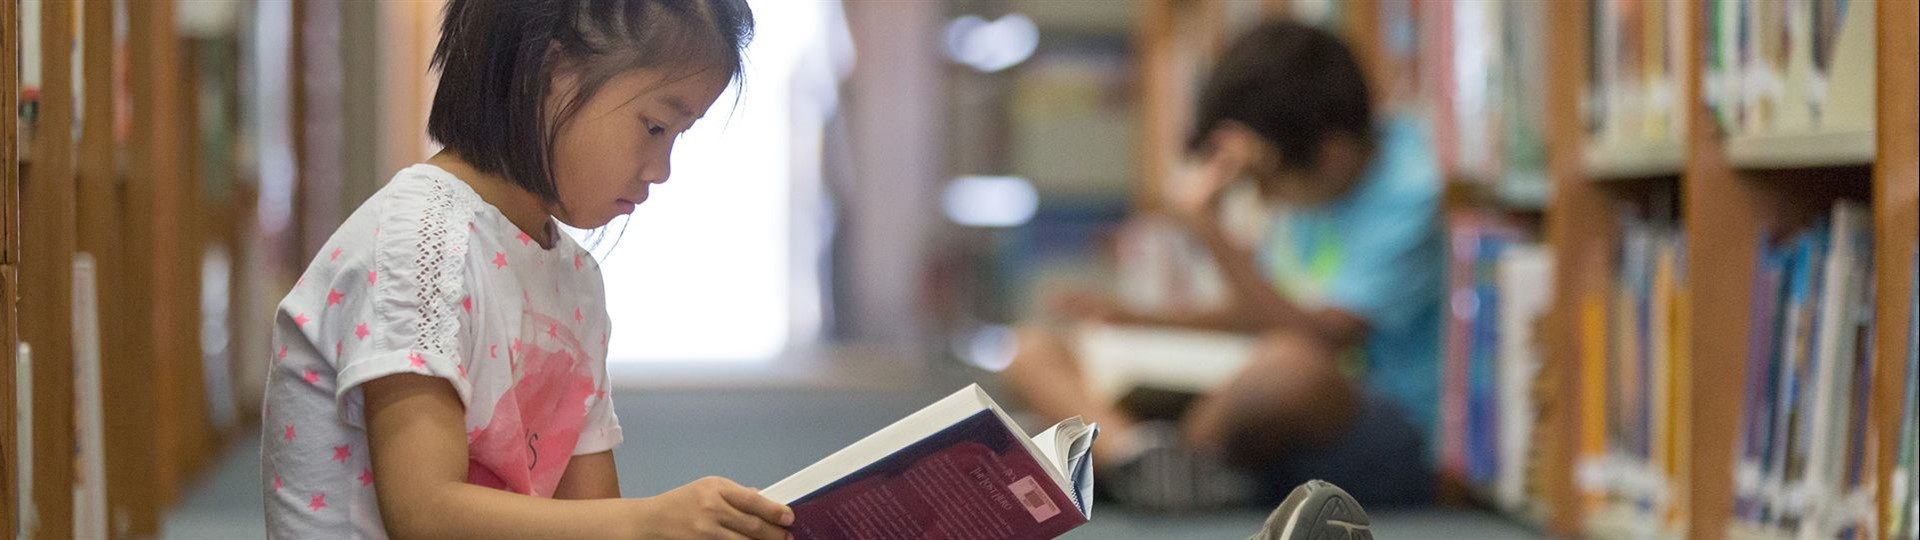 Young asian girl reading a book in a library. Link to: Reading Benefits for Kids and Teens